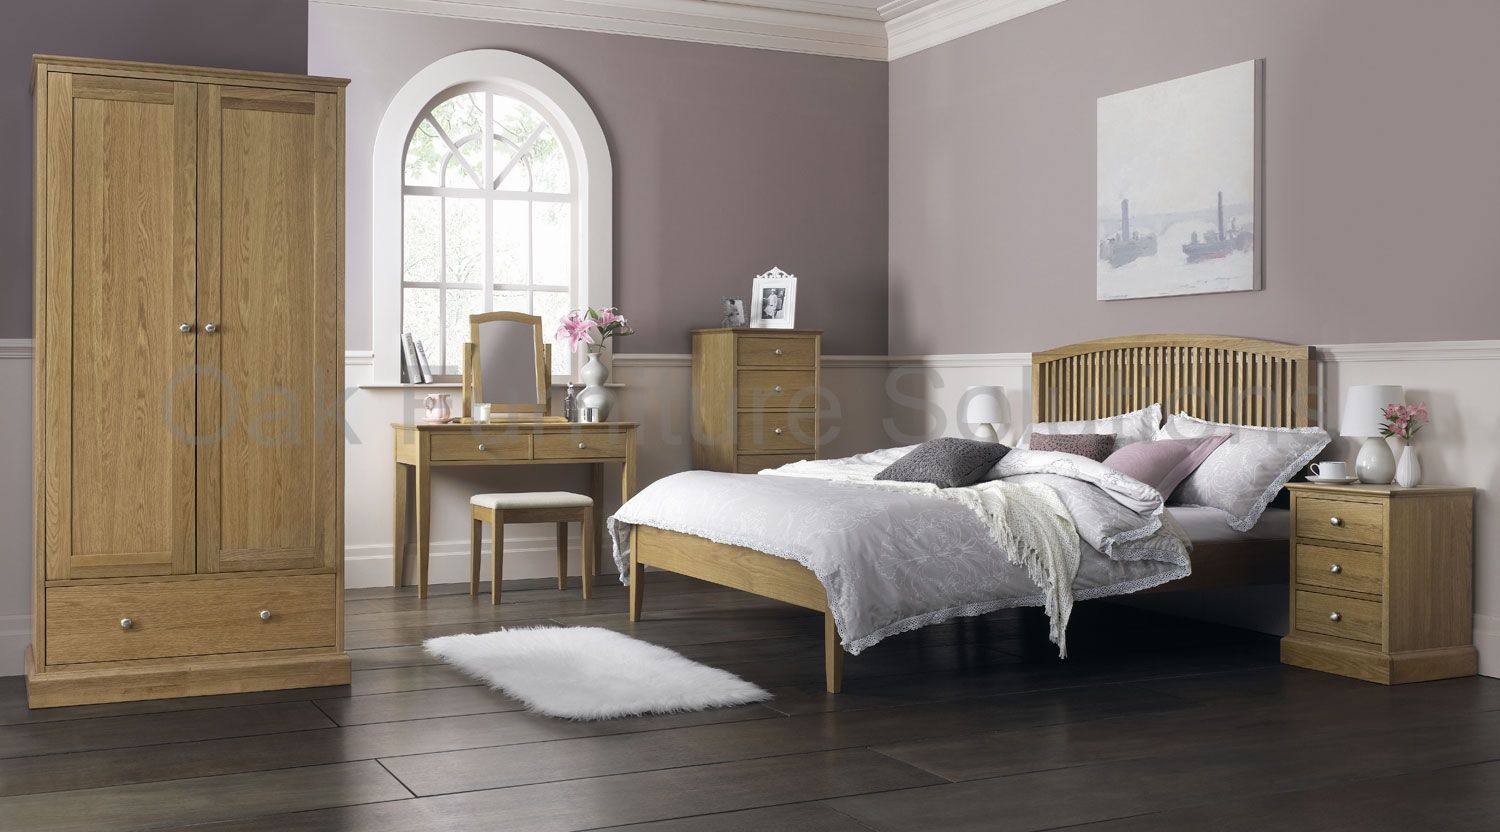 oak furniture light oak bedroom set | Oak bedroom furniture